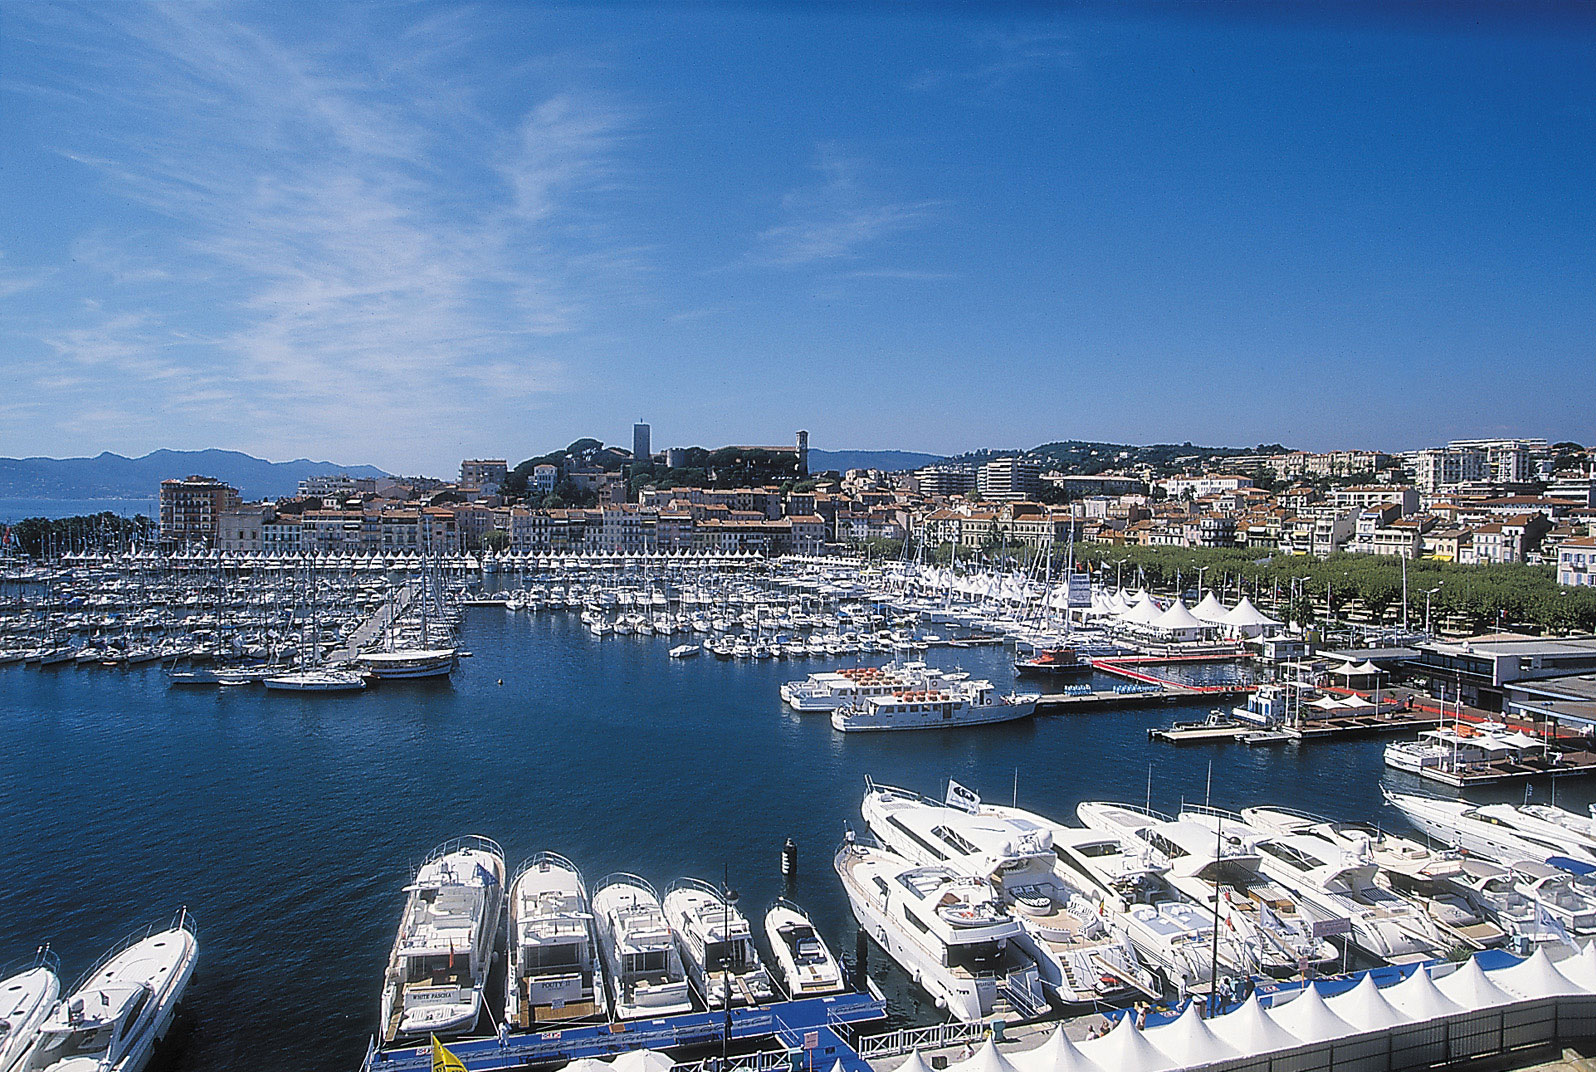 A Luxury Weekend Break On The Fabulous French Riviera – Cannes